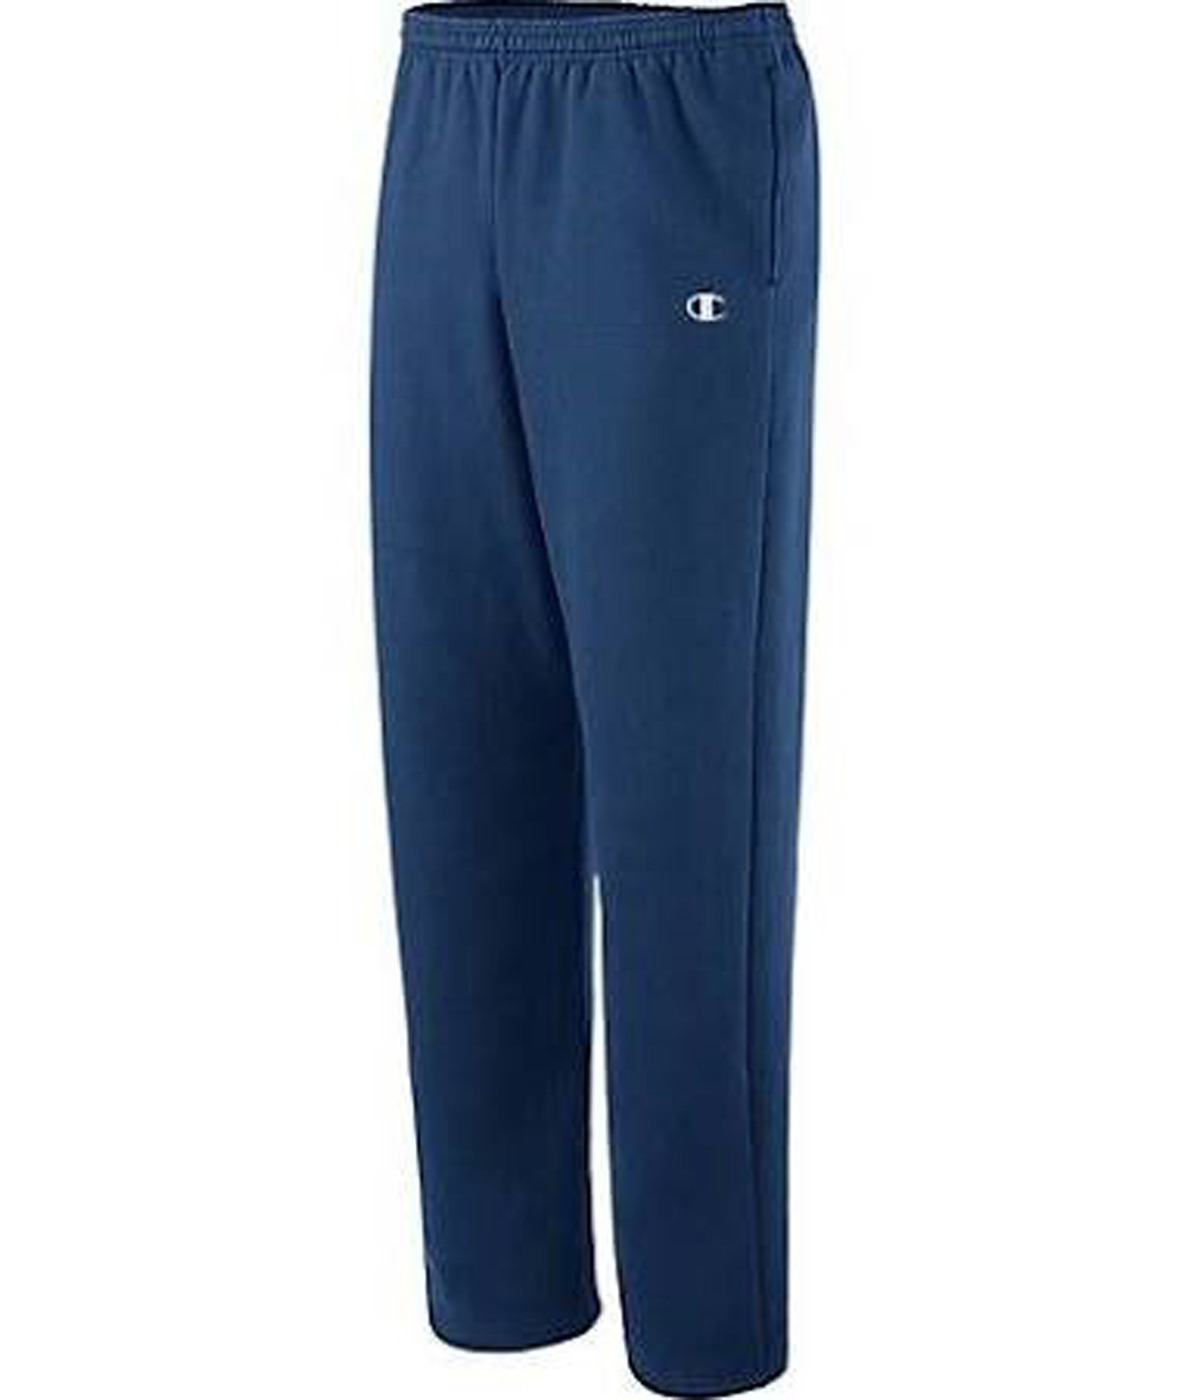 Champion Men's Open Bottom Eco Fleece Sweatpant - Large - Navy - 70080 - Basketball Basketballs Balls Color Rubber Basketballs 70080